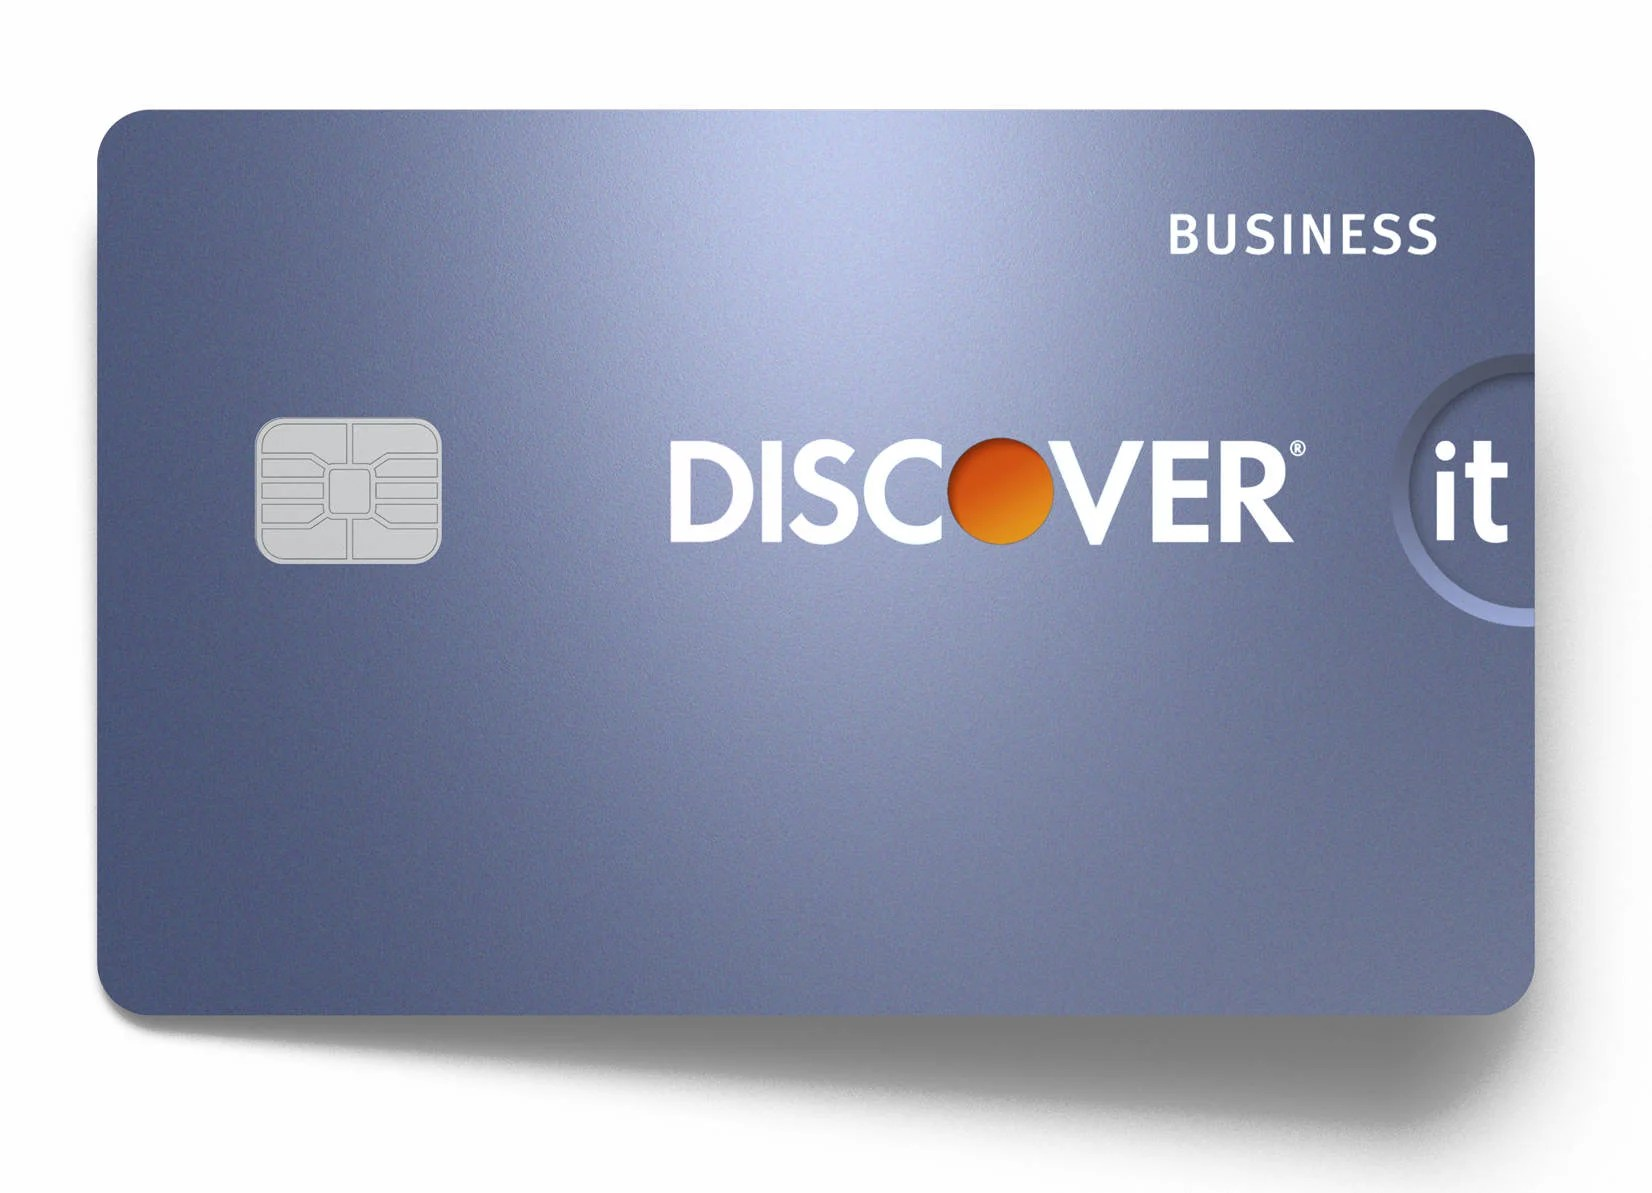 Discover launches new business credit card with first year cash back to aid with bookkeeping discover says you can get itemized reports for each employee card the issuer also has made it easy for business owners to download colourmoves